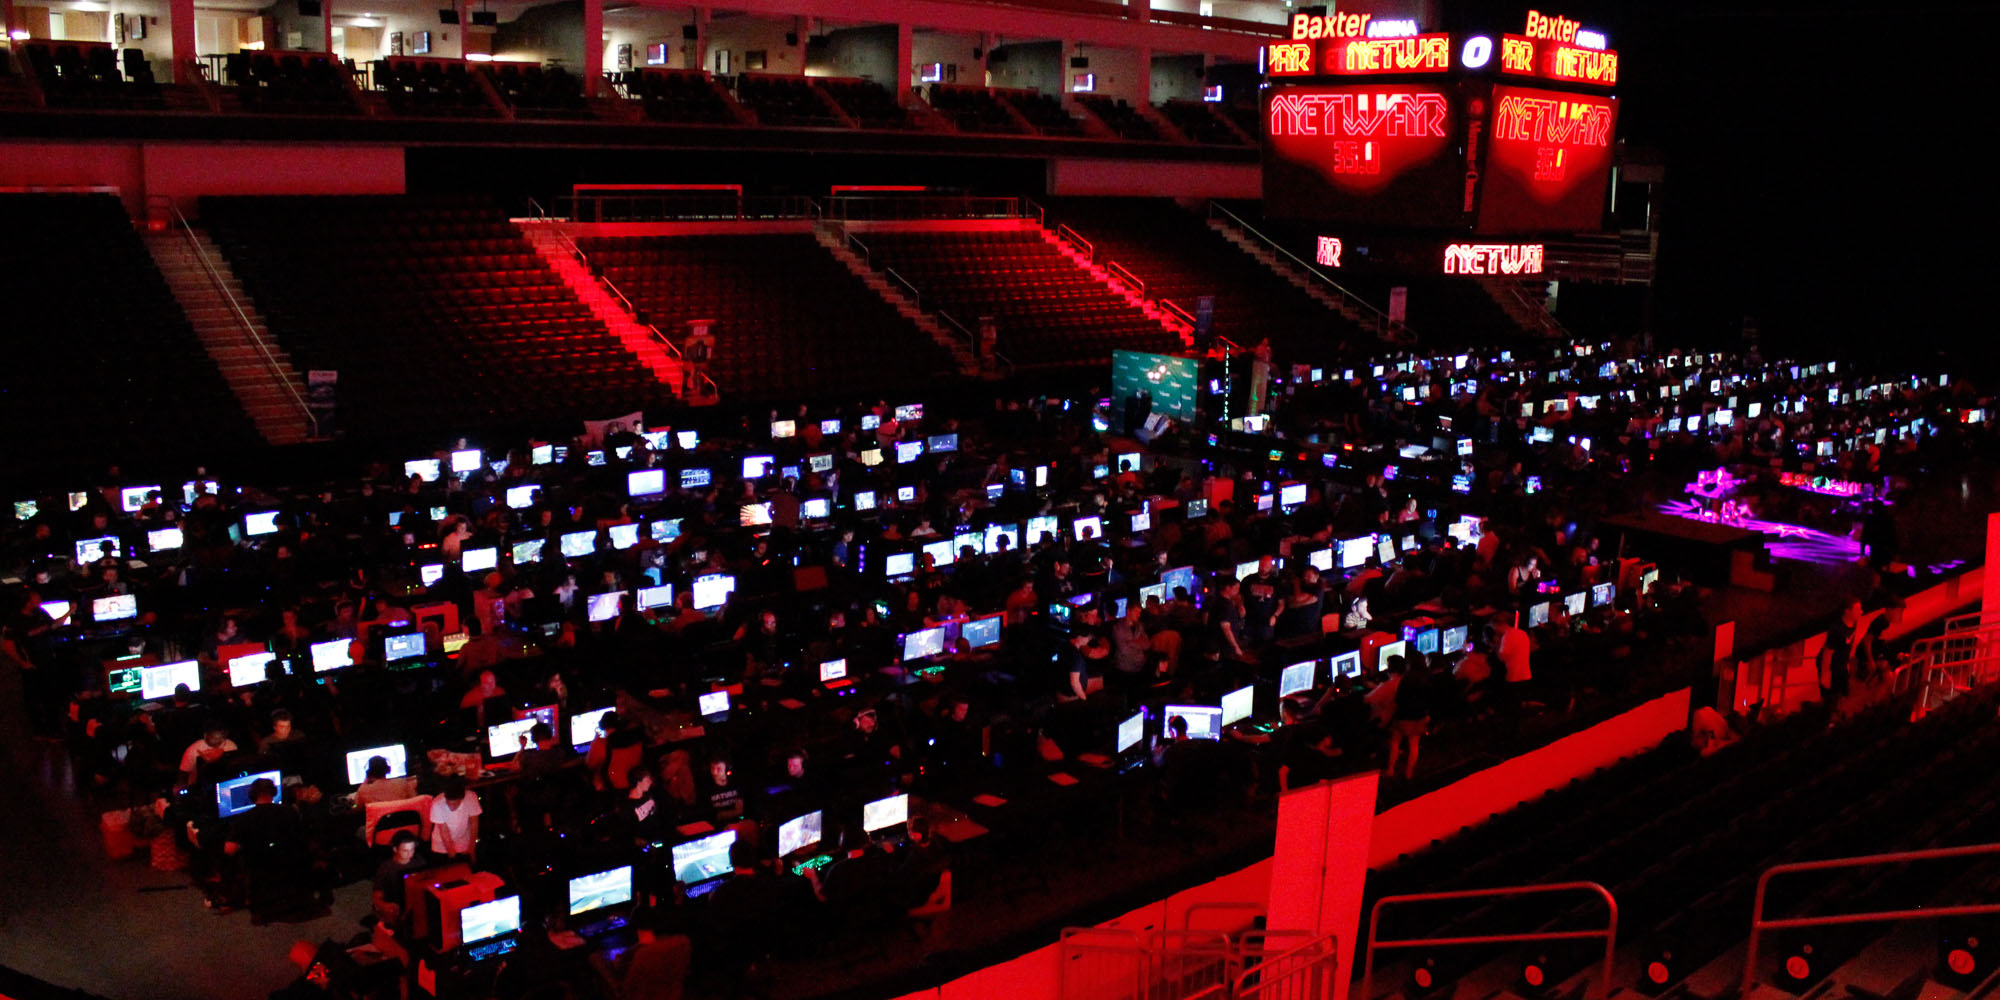 NETWAR 36.0 will accommodate 638 gamers.